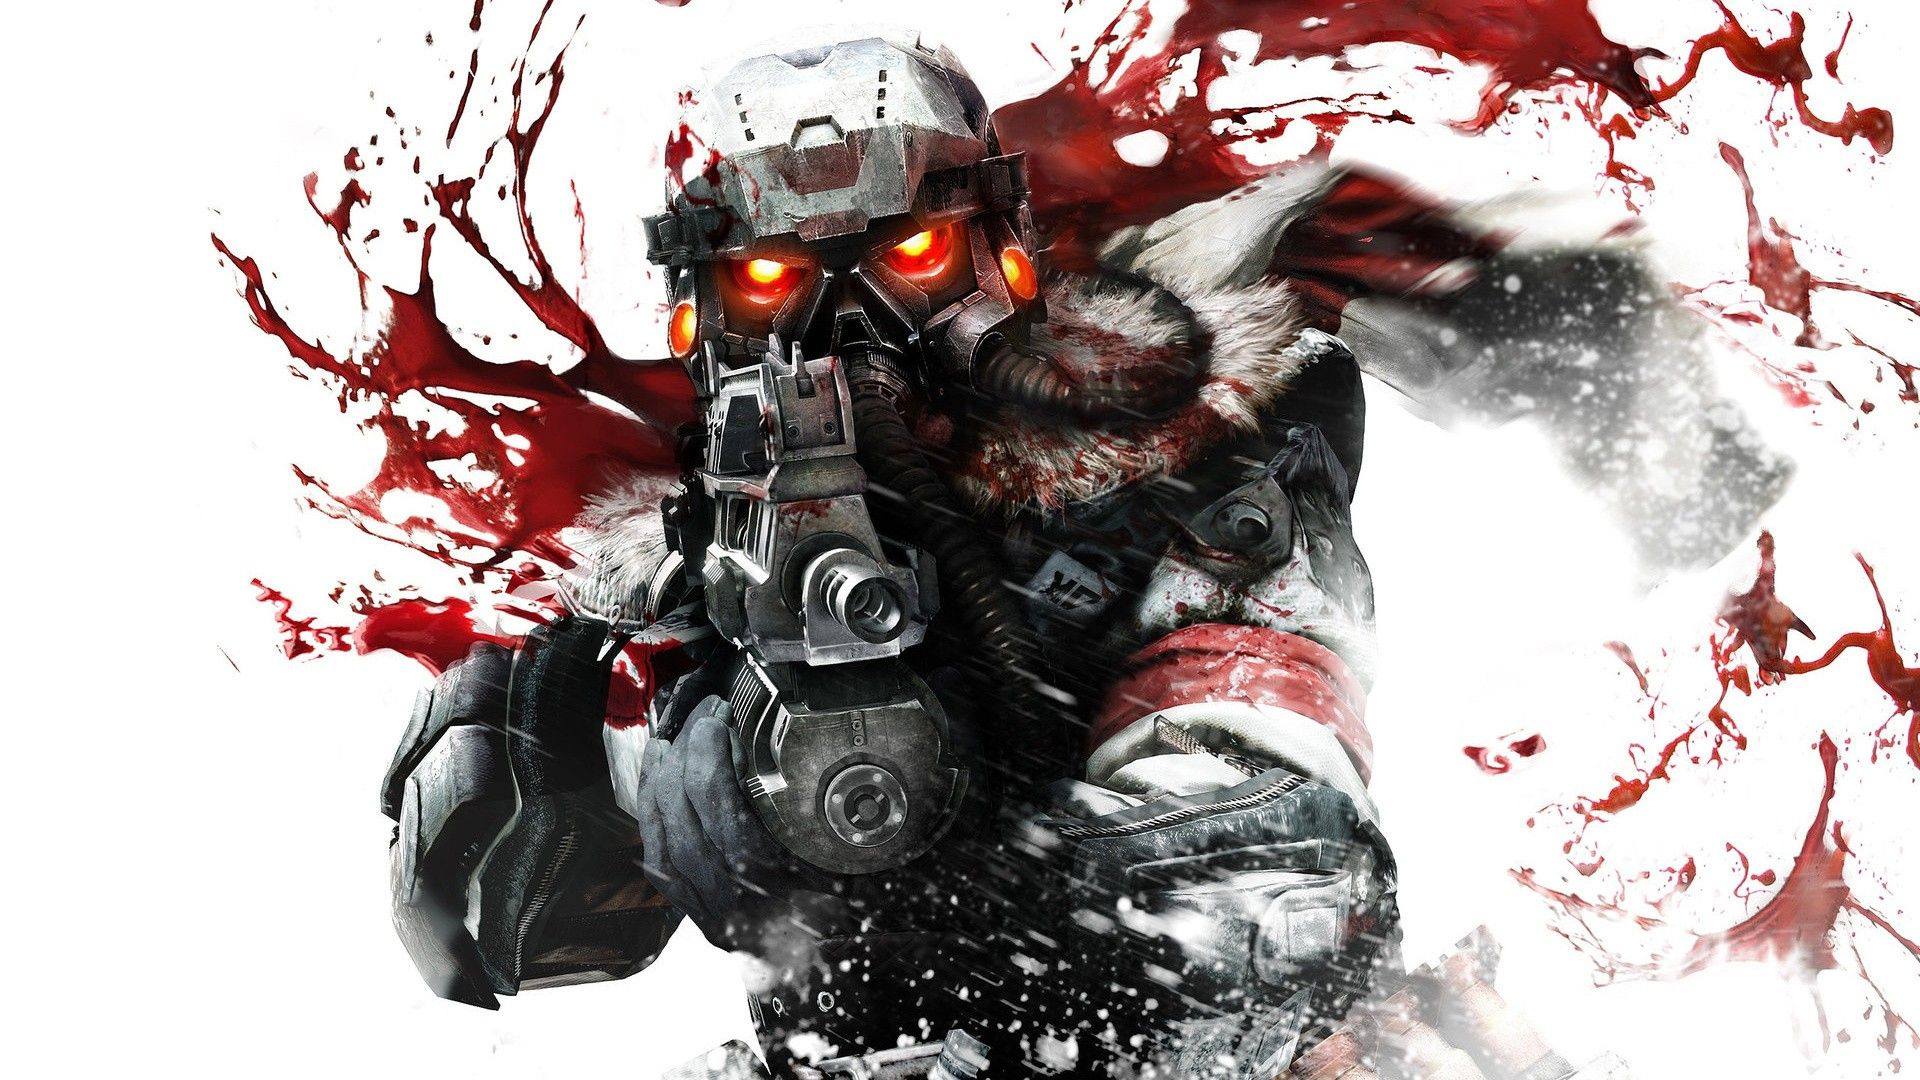 1080p Gaming Wallpapers Top Free 1080p Gaming Backgrounds Wallpaperaccess